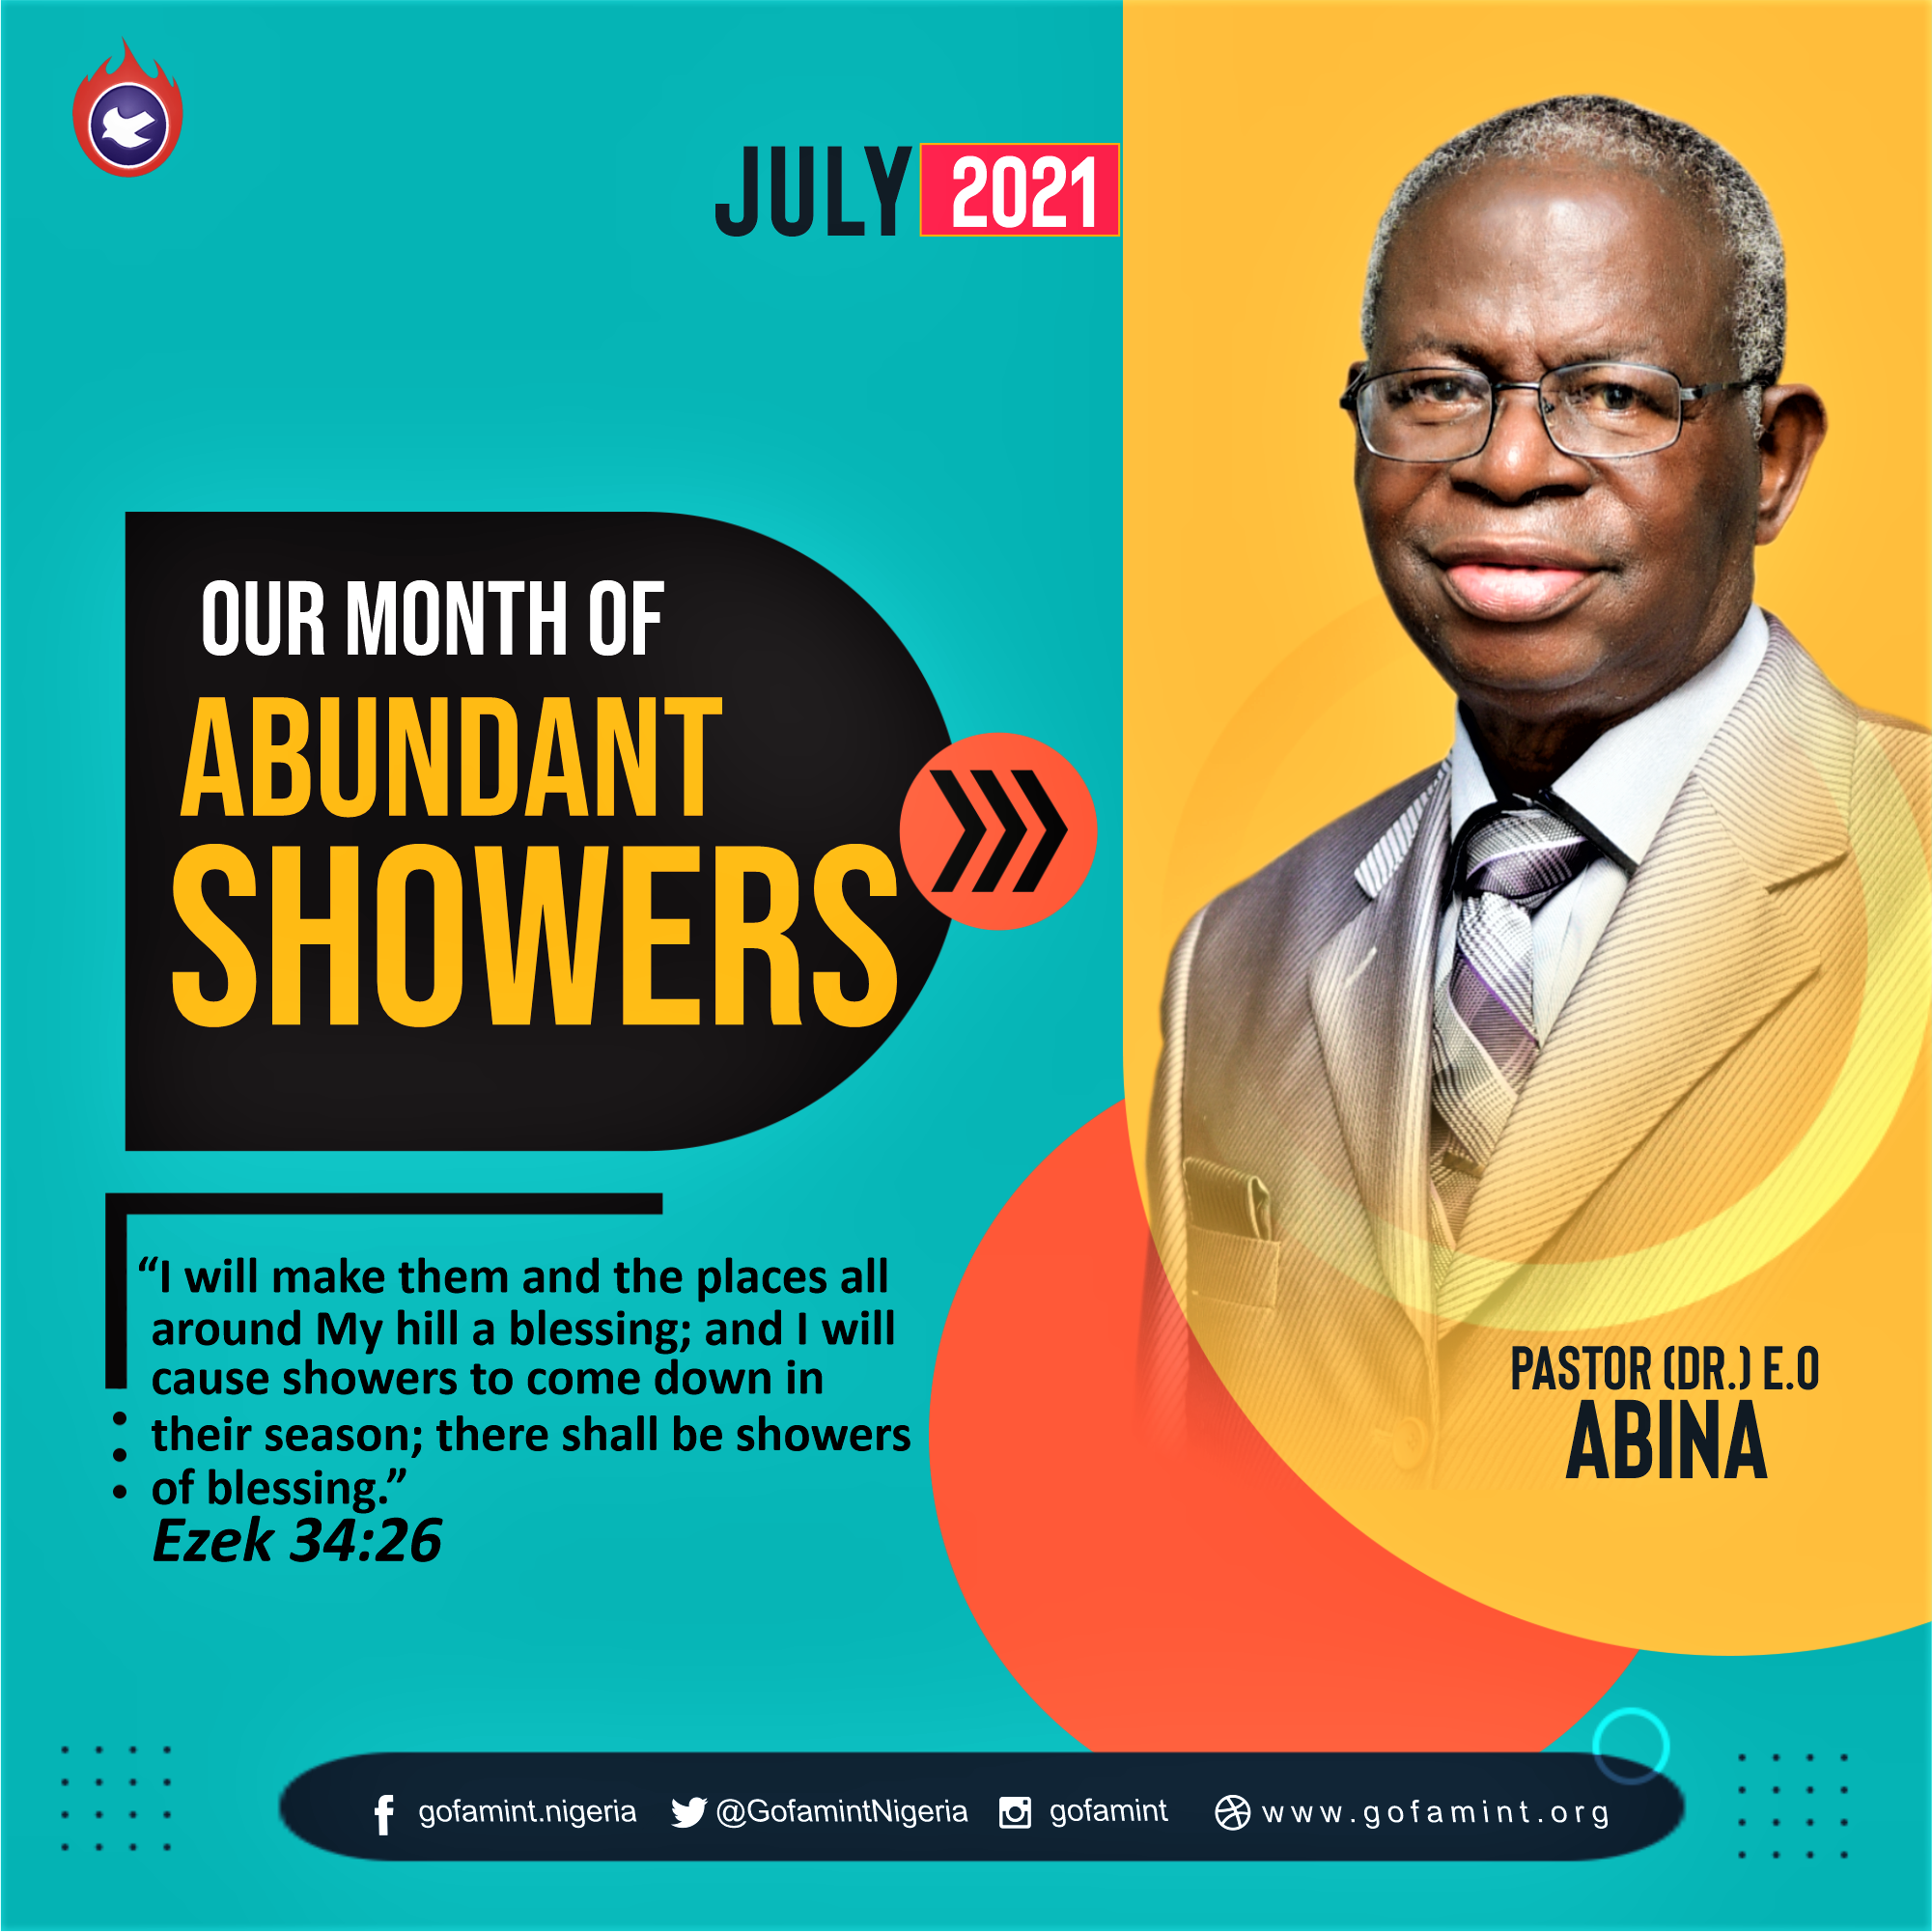 PROPHETIC DECLARATION FOR THE MONTH OF JULY 2021